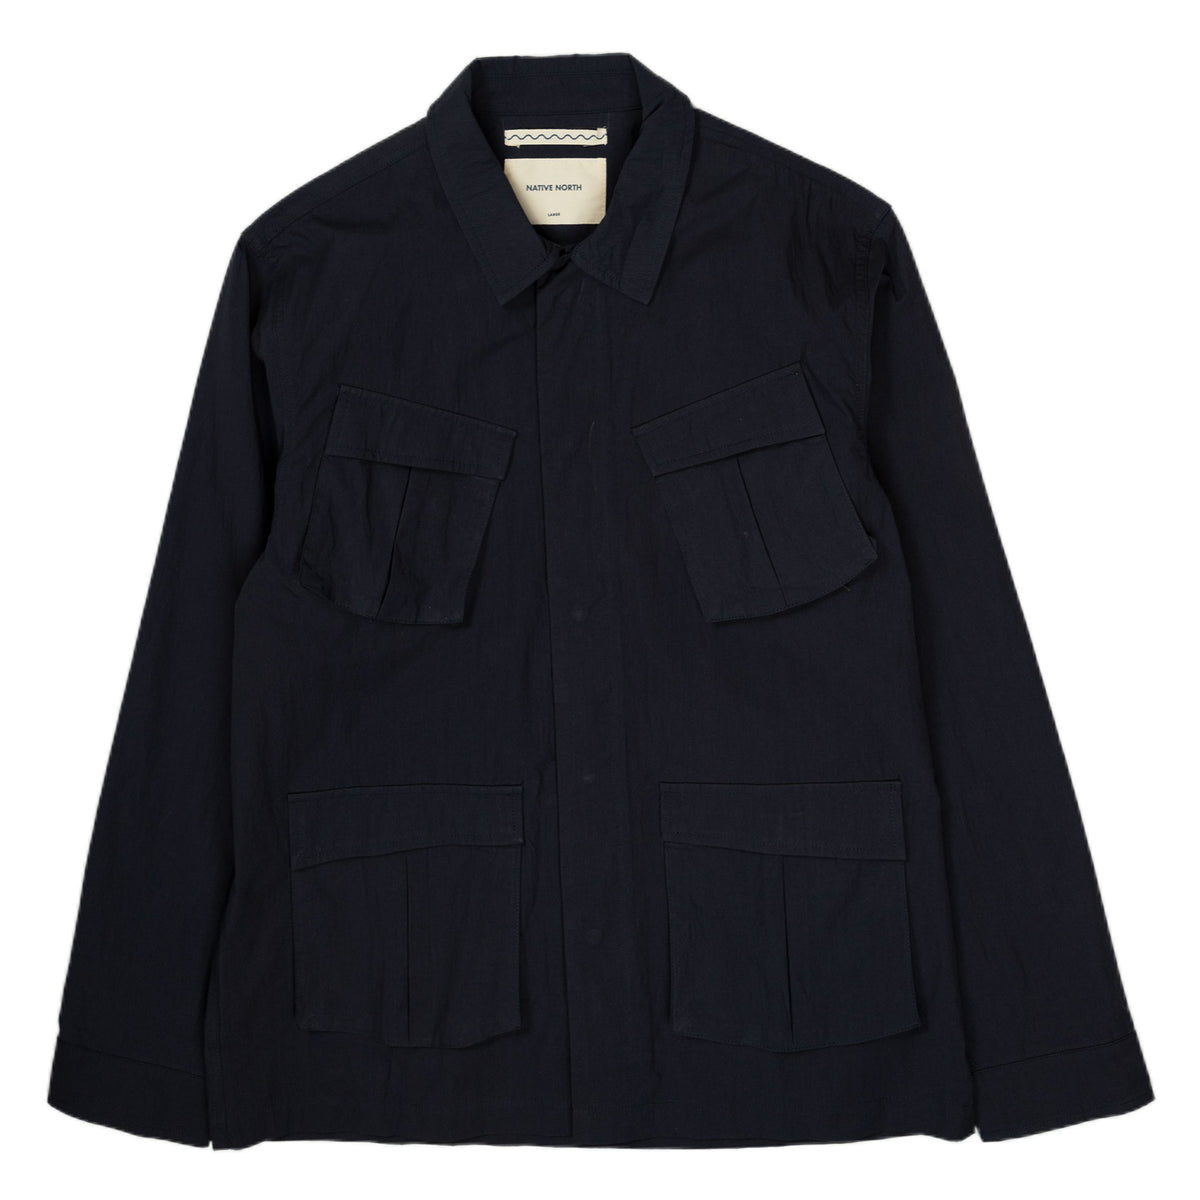 Native North Thorvald Paper Jacket in Navy